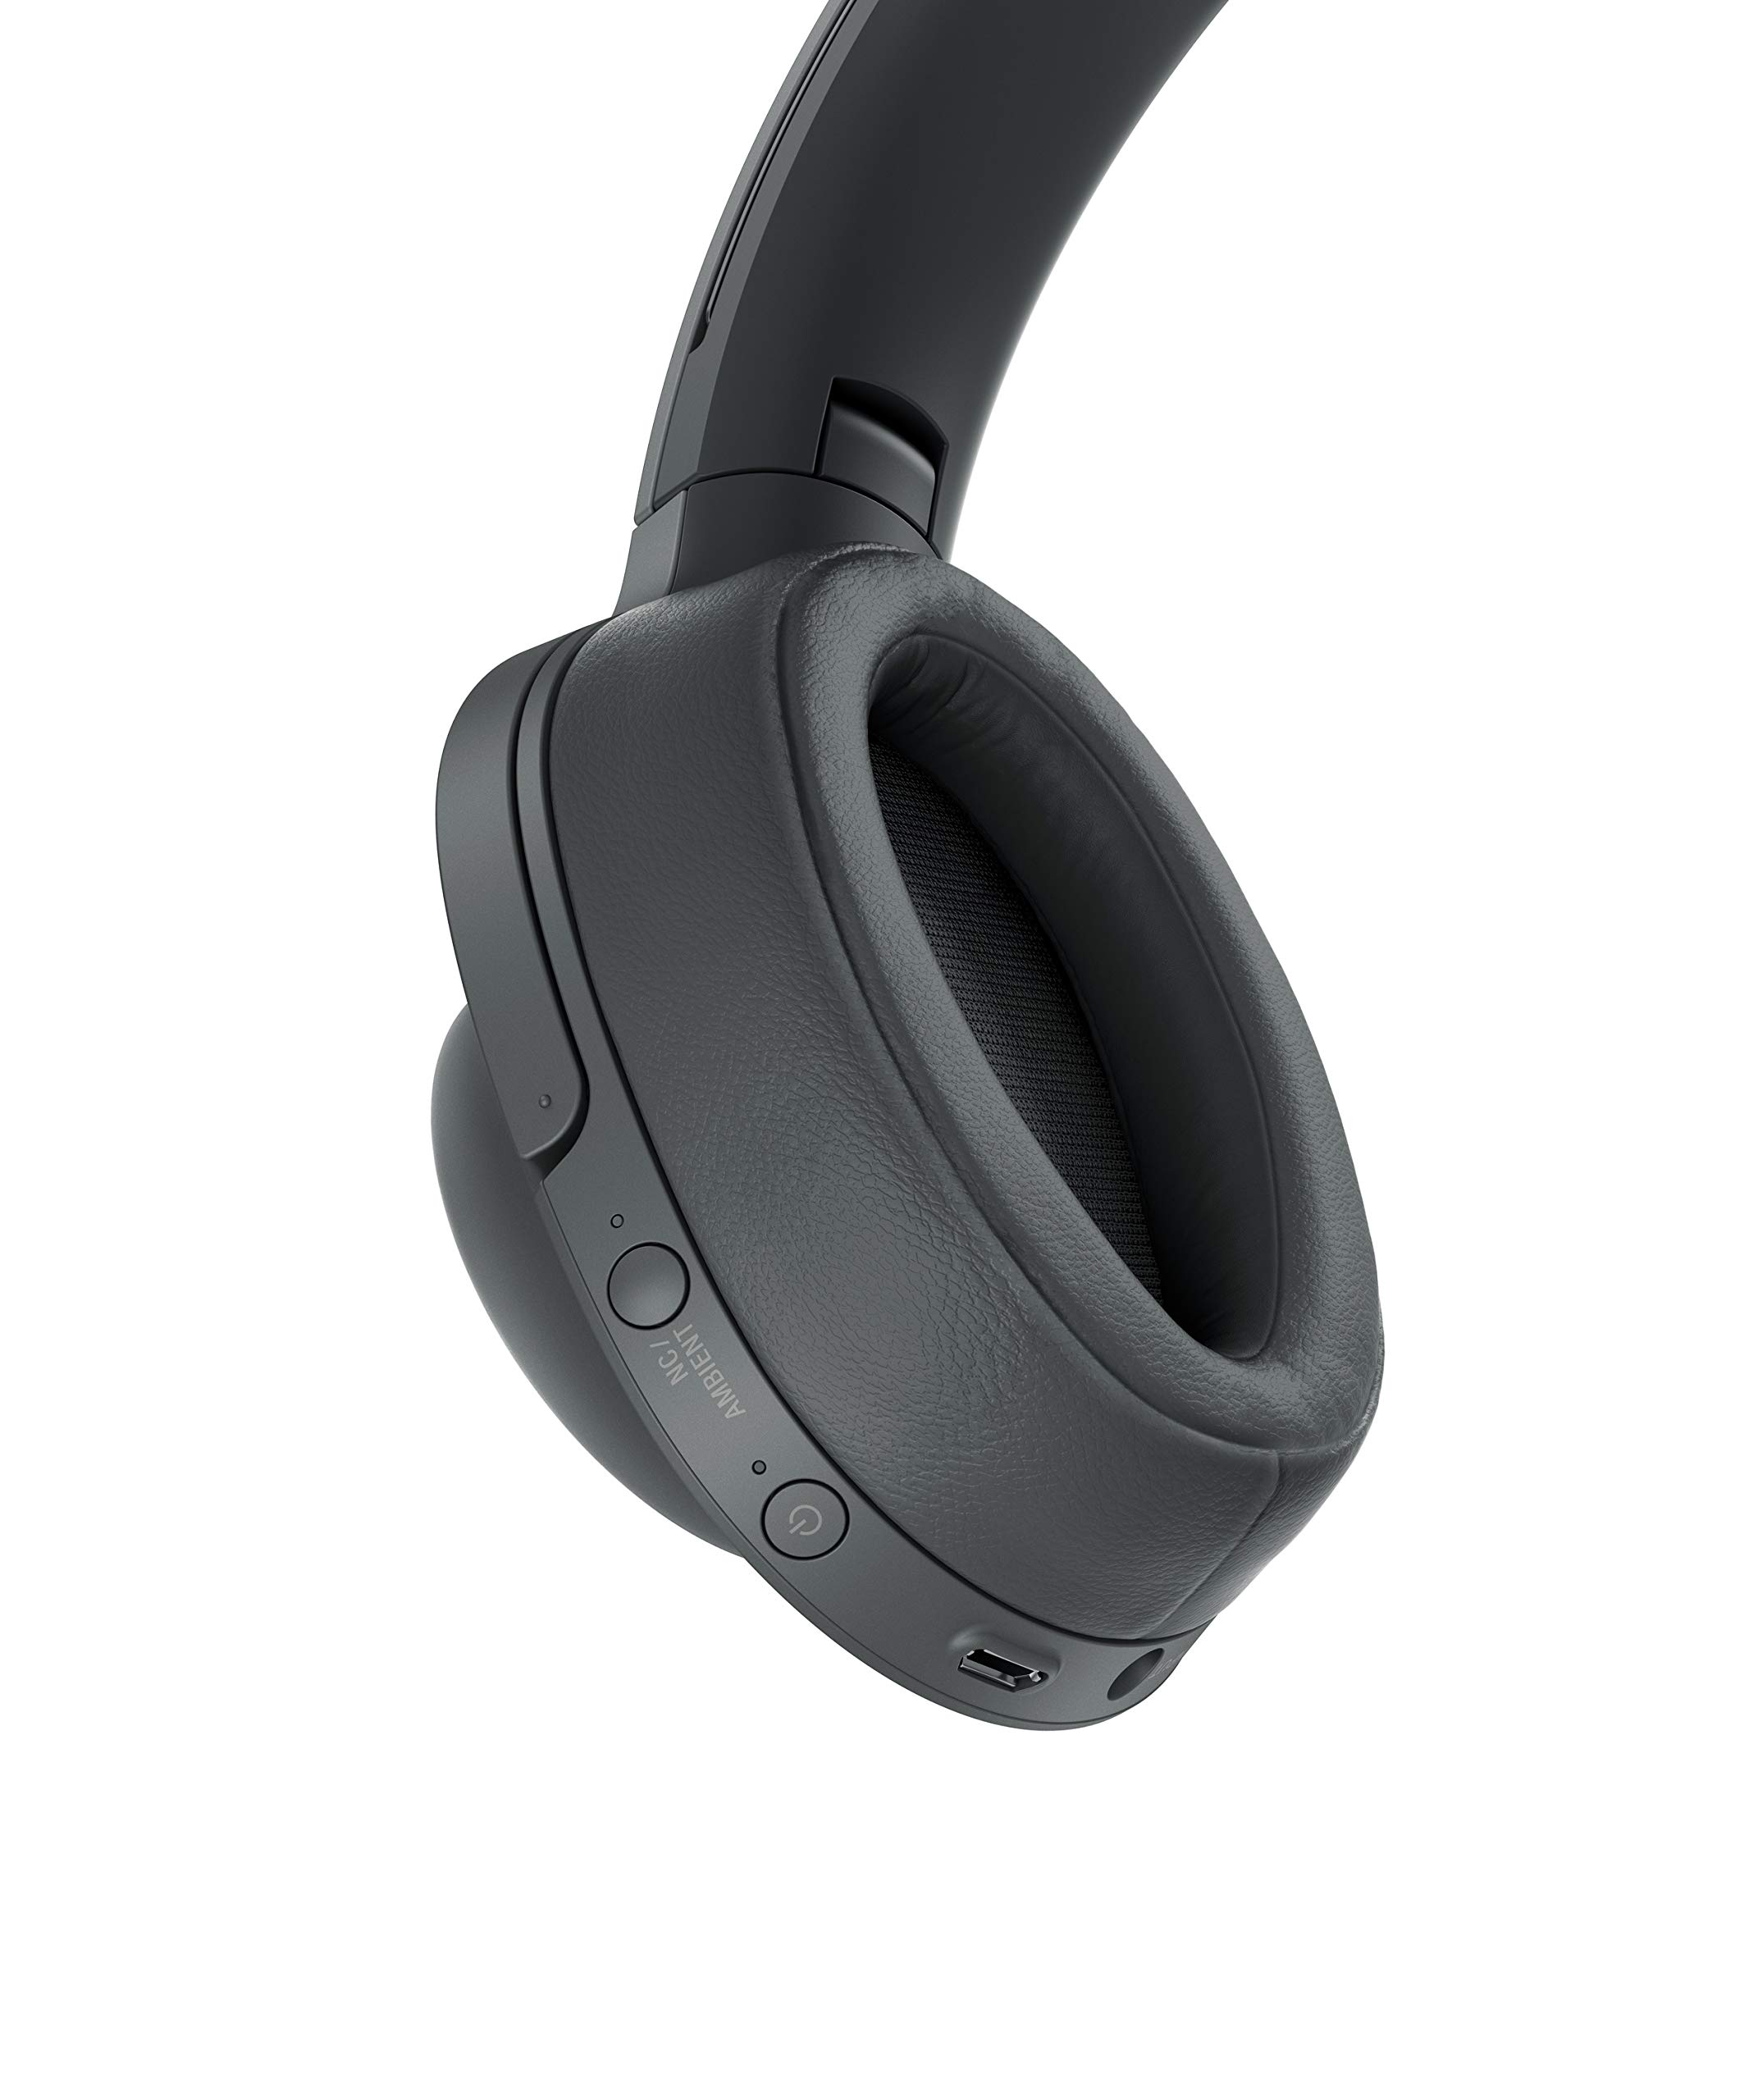 Sony Sony whh900n hear on 2 wireless overear noise cancelling high resolution headphones, 2.4 Ounce by Sony (Image #8)